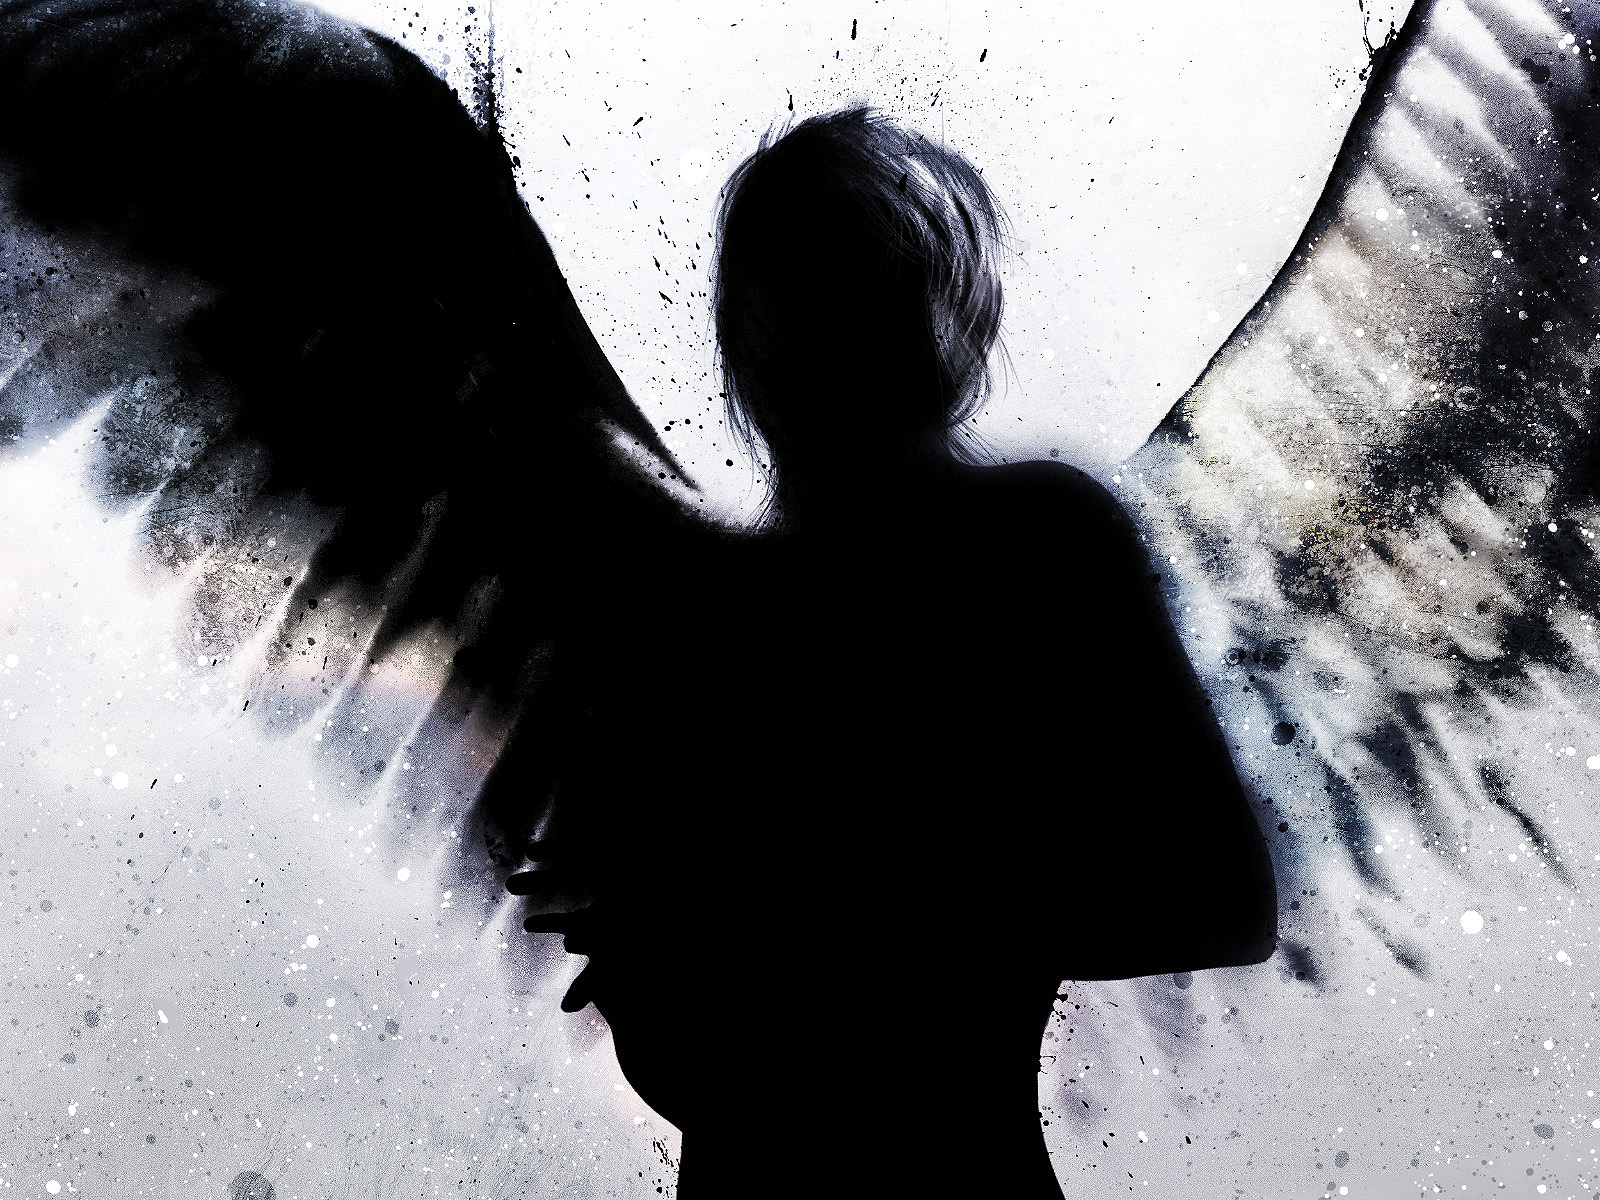 free angels wallpaper backgrounds hd 1600x1200